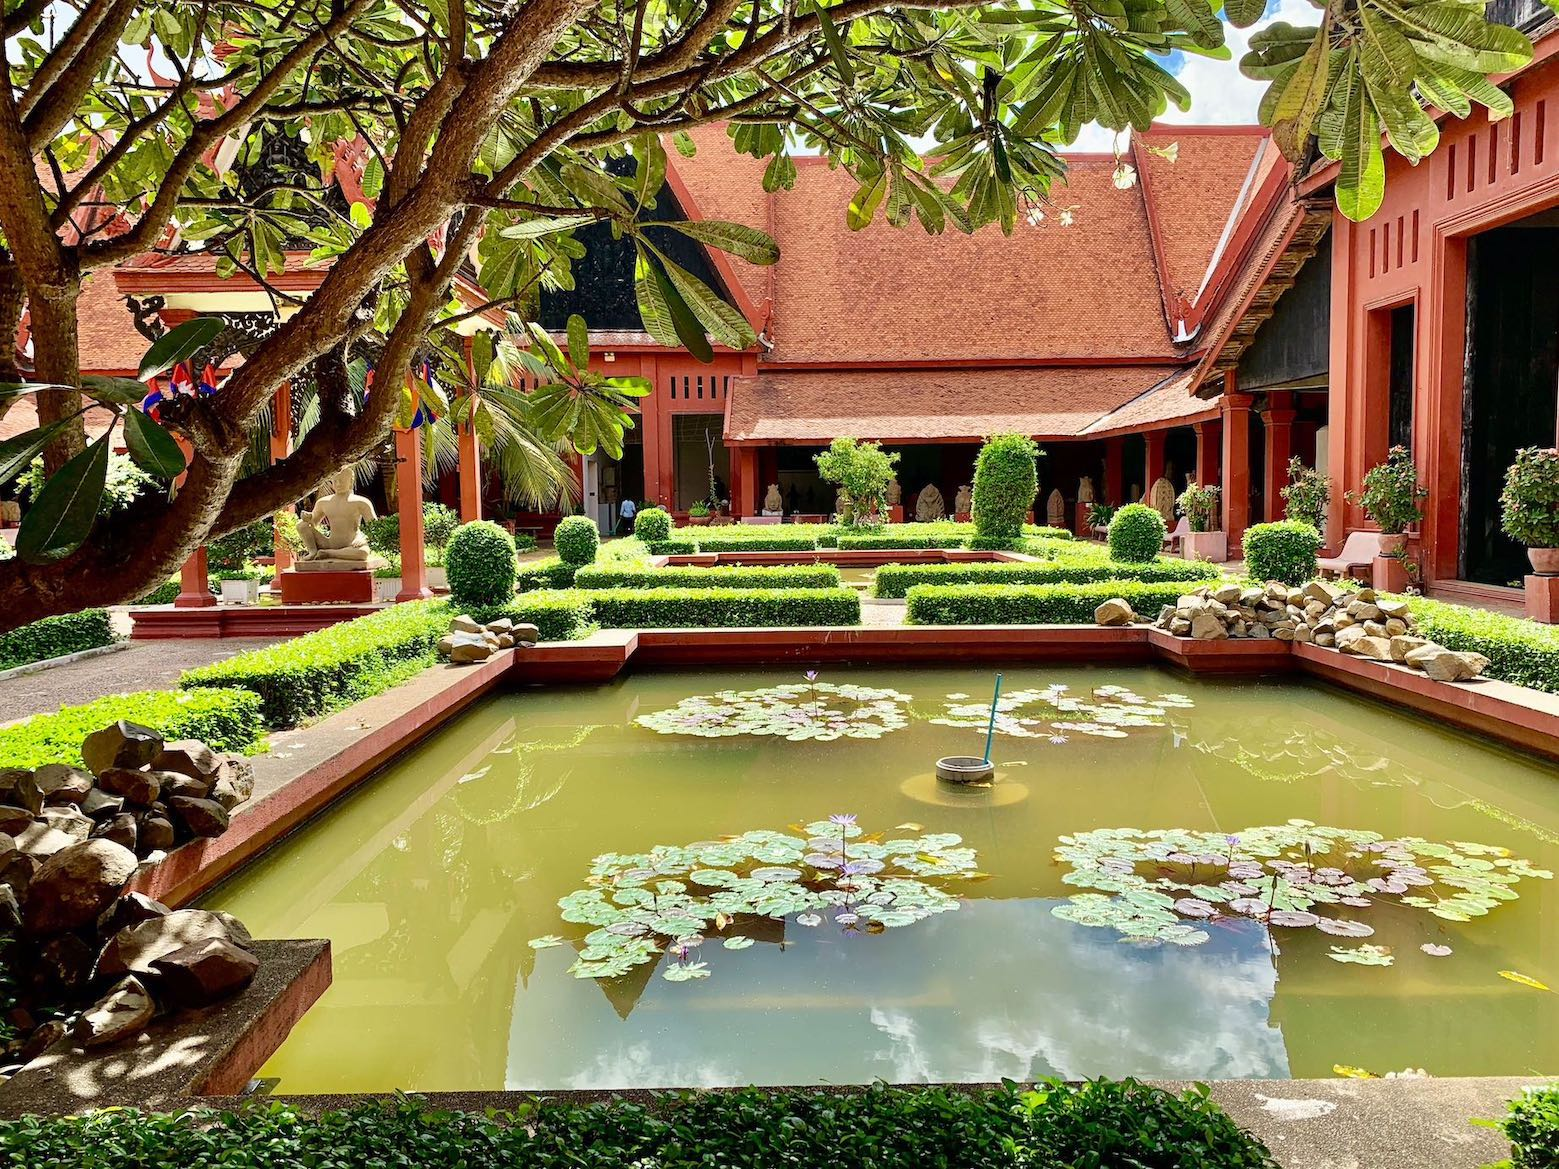 The beautiful garden at The National Museum of Cambodia